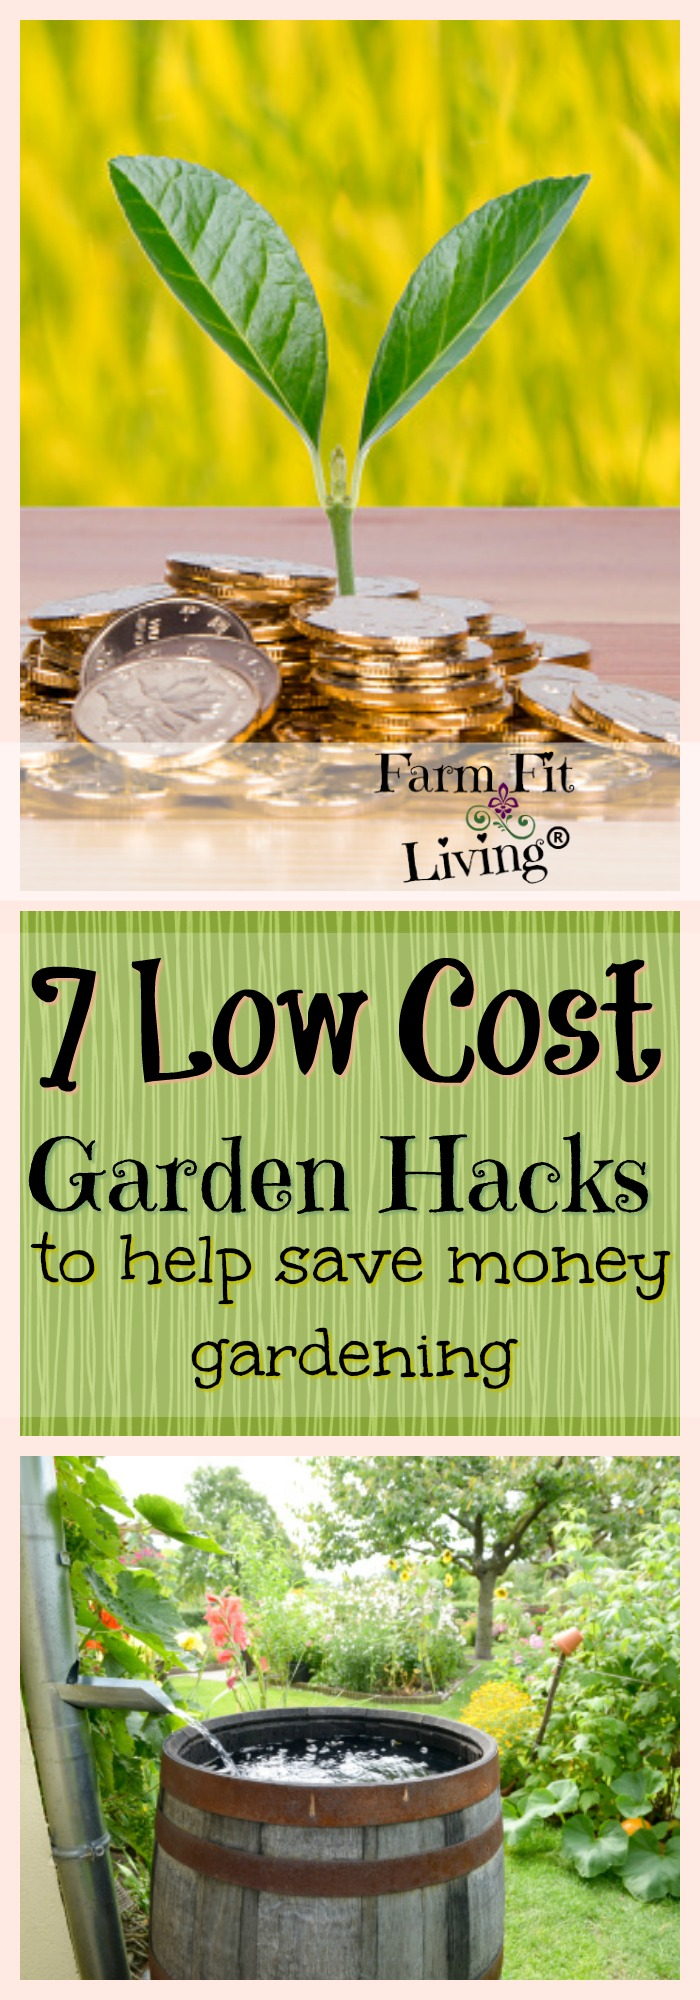 Are you curious about low cost garden hacks that can help you save money on your garden venture? Here are 7 hacks to low cost gardening. #gardenhacks #lowcostgardening #cheapgardening